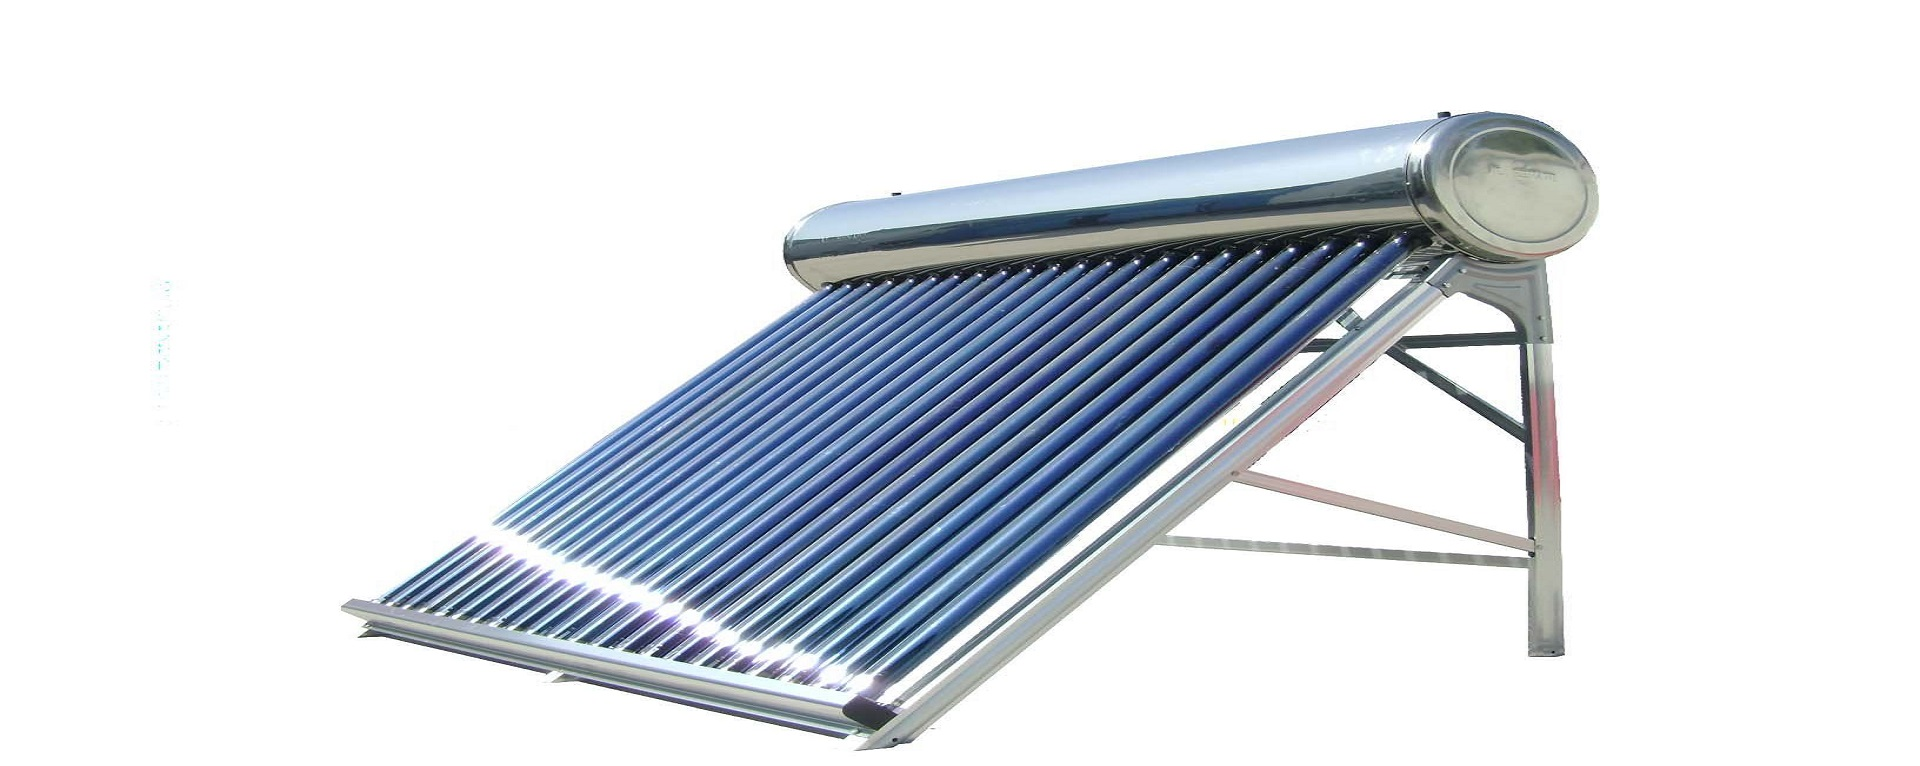 Solar Thermal Water Heating is a simple, reliable and cost effective technology that harnesses the sun's energy to provide for hot water needs of commercial ...